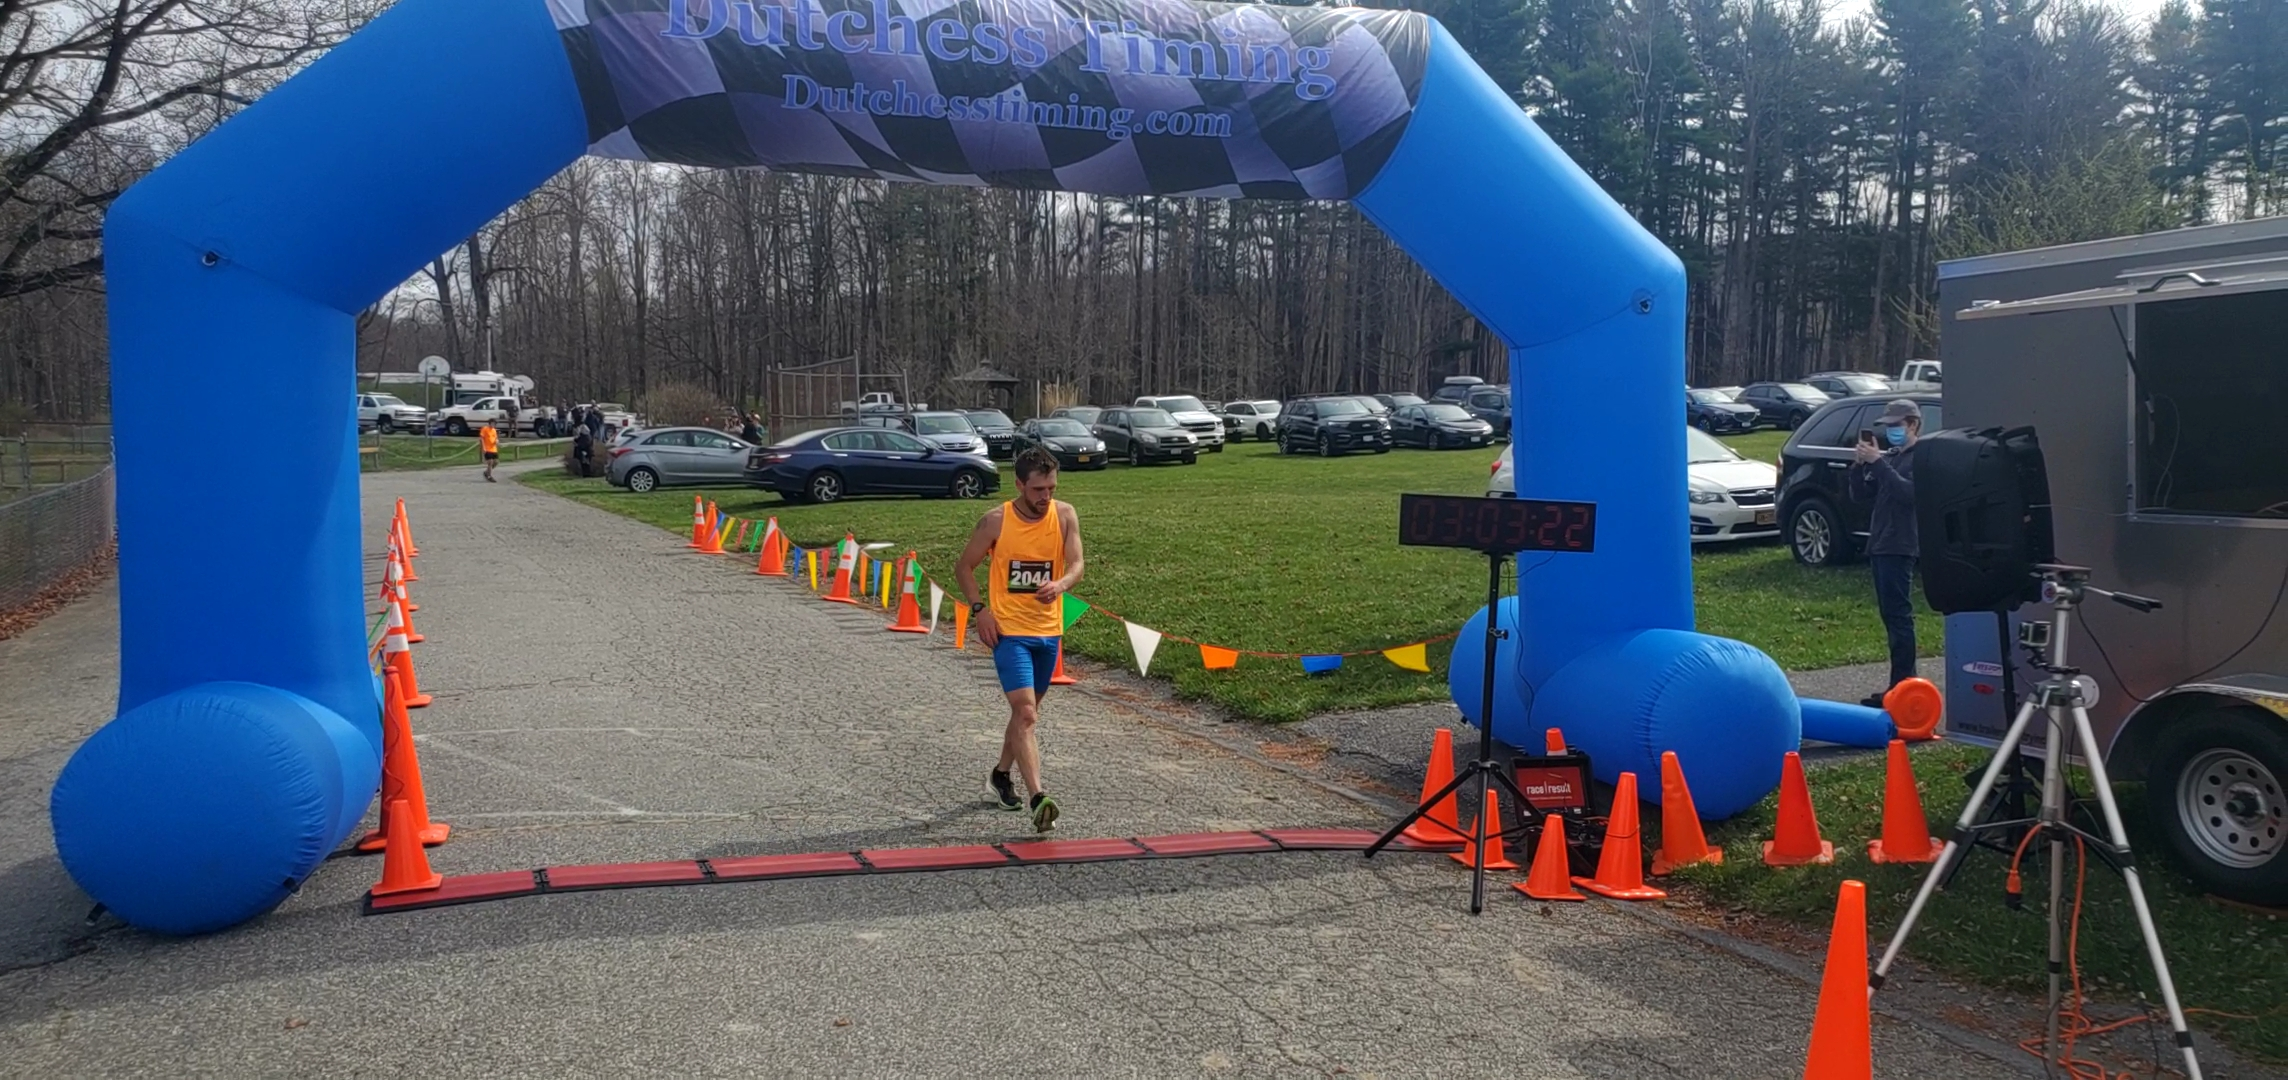 <strong>The first-place male finisher of the Millbrook Marathon was Reid McGrath, who finished with a time of 3:03:23.</strong><em><strong>Photoby Judith O'Hara Balfe</strong></em>